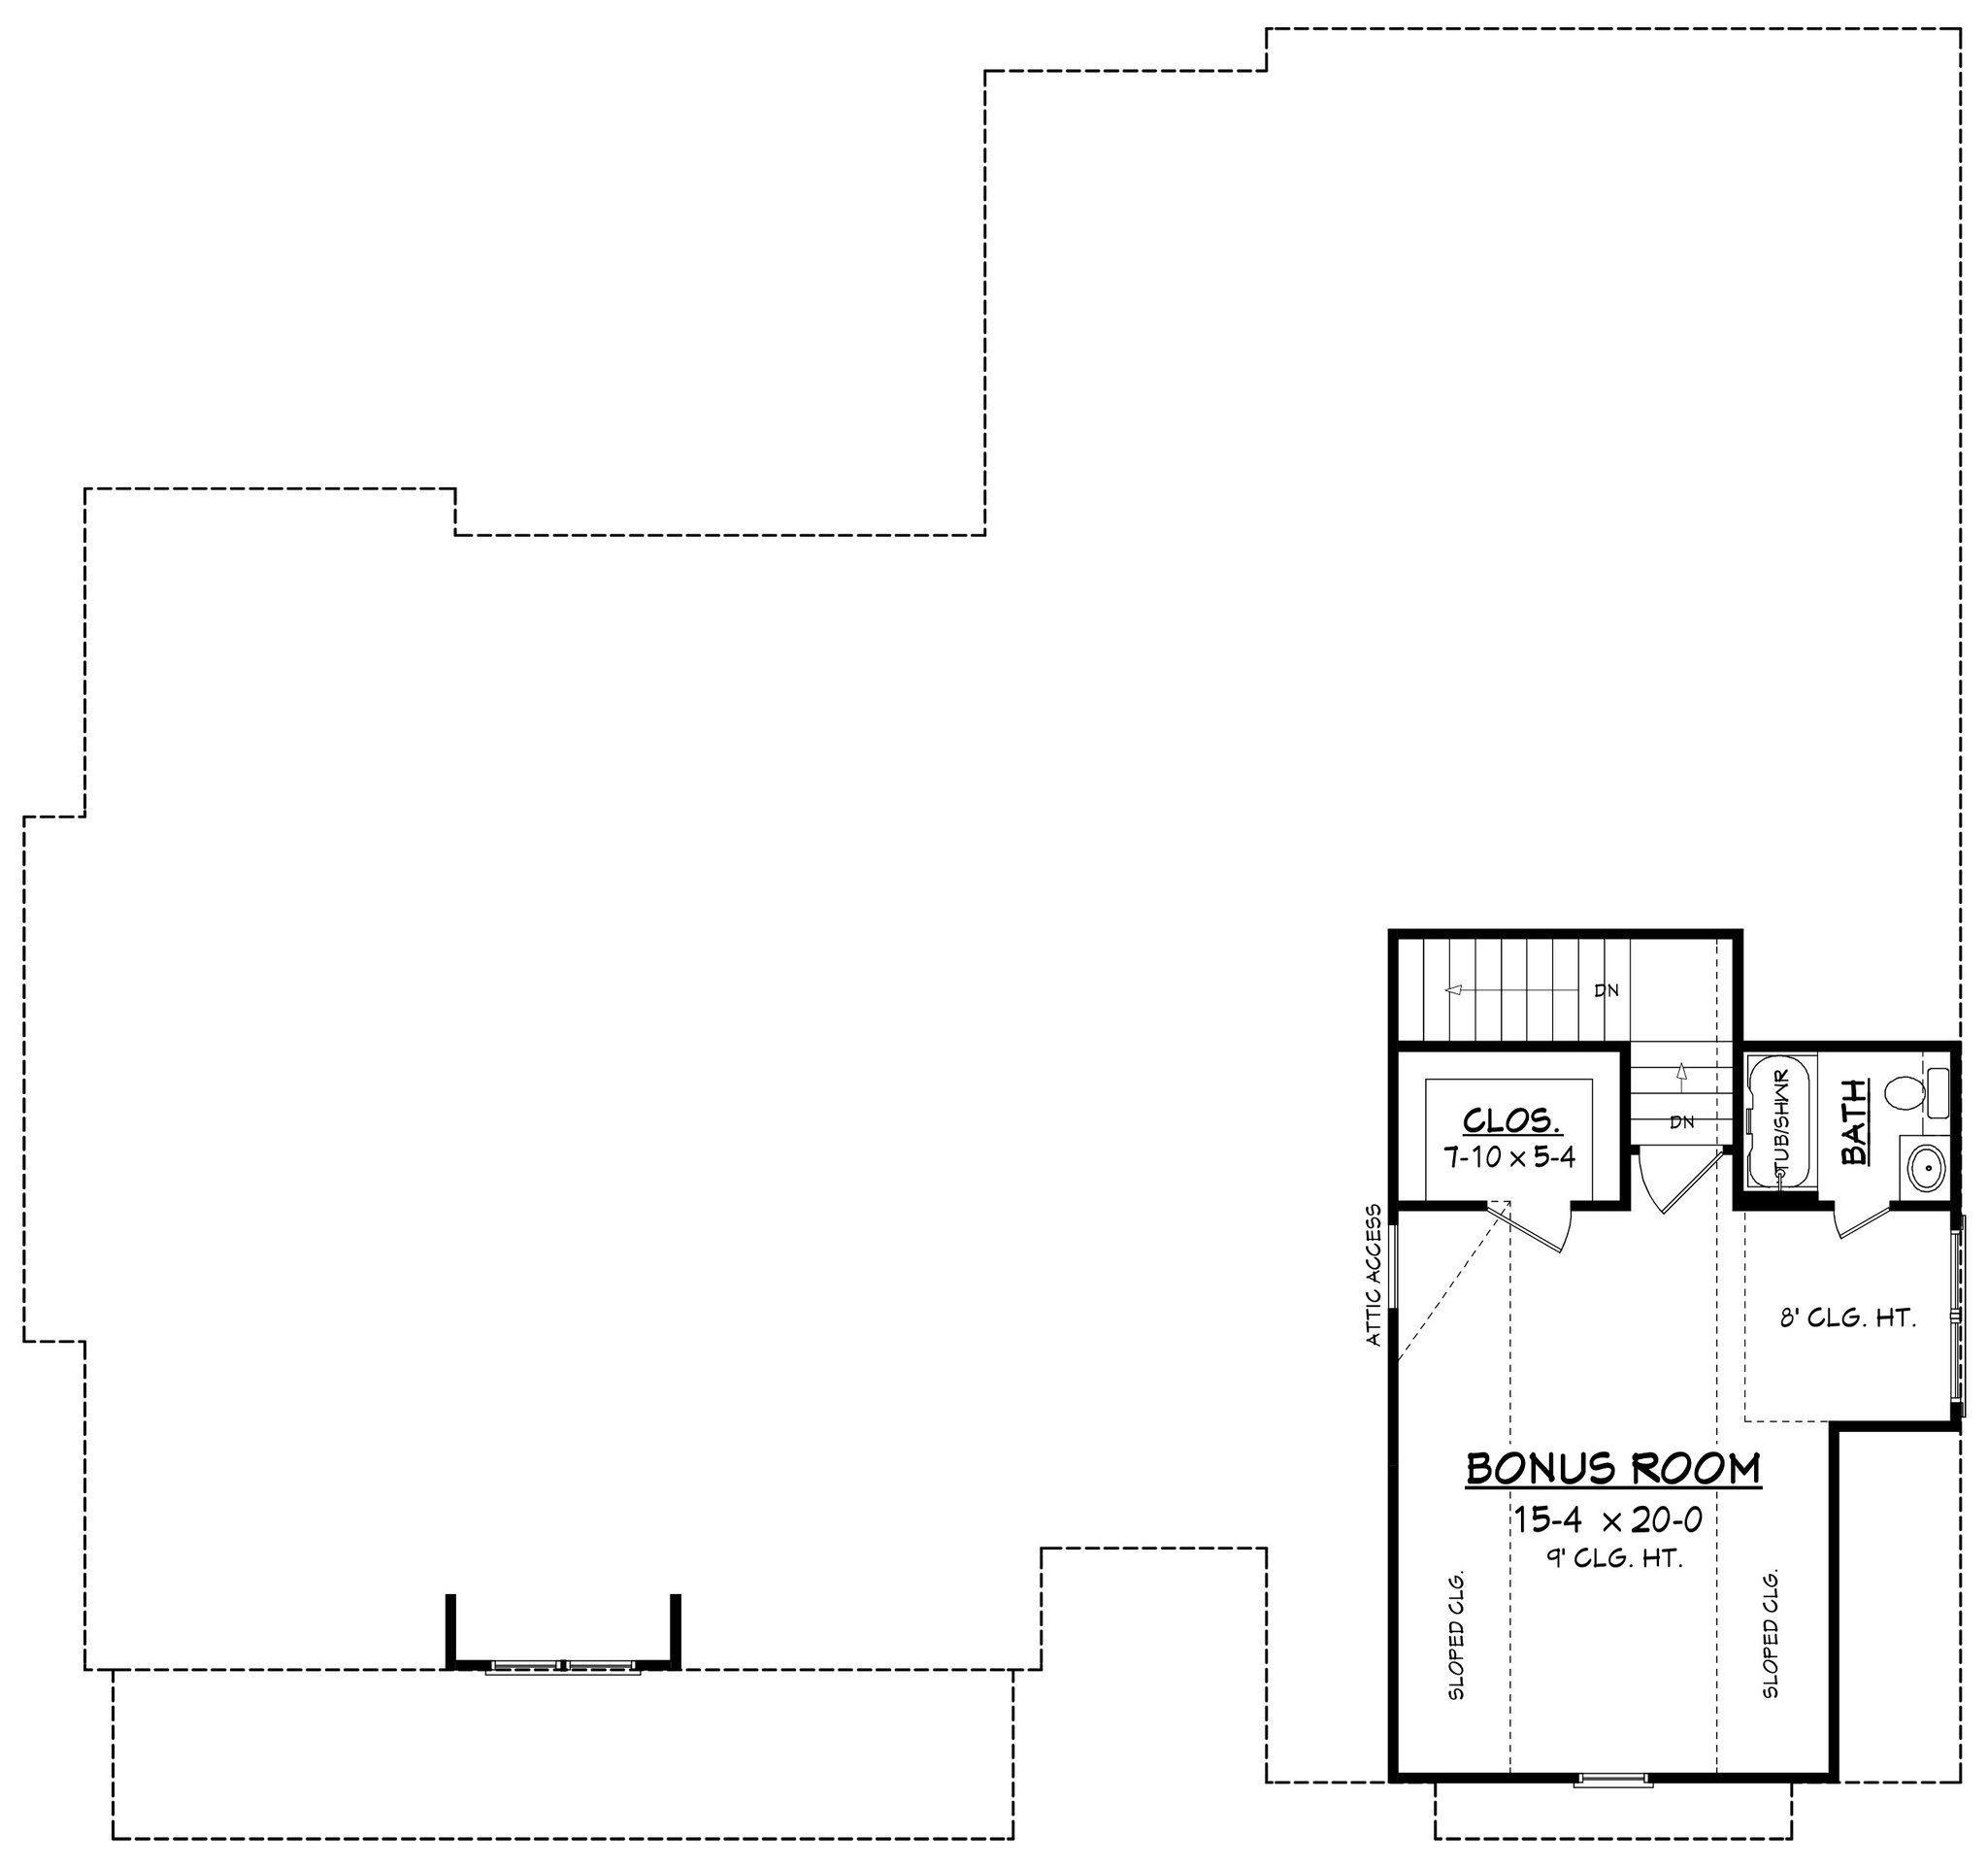 highland court ii house plan brick accent walls open living area